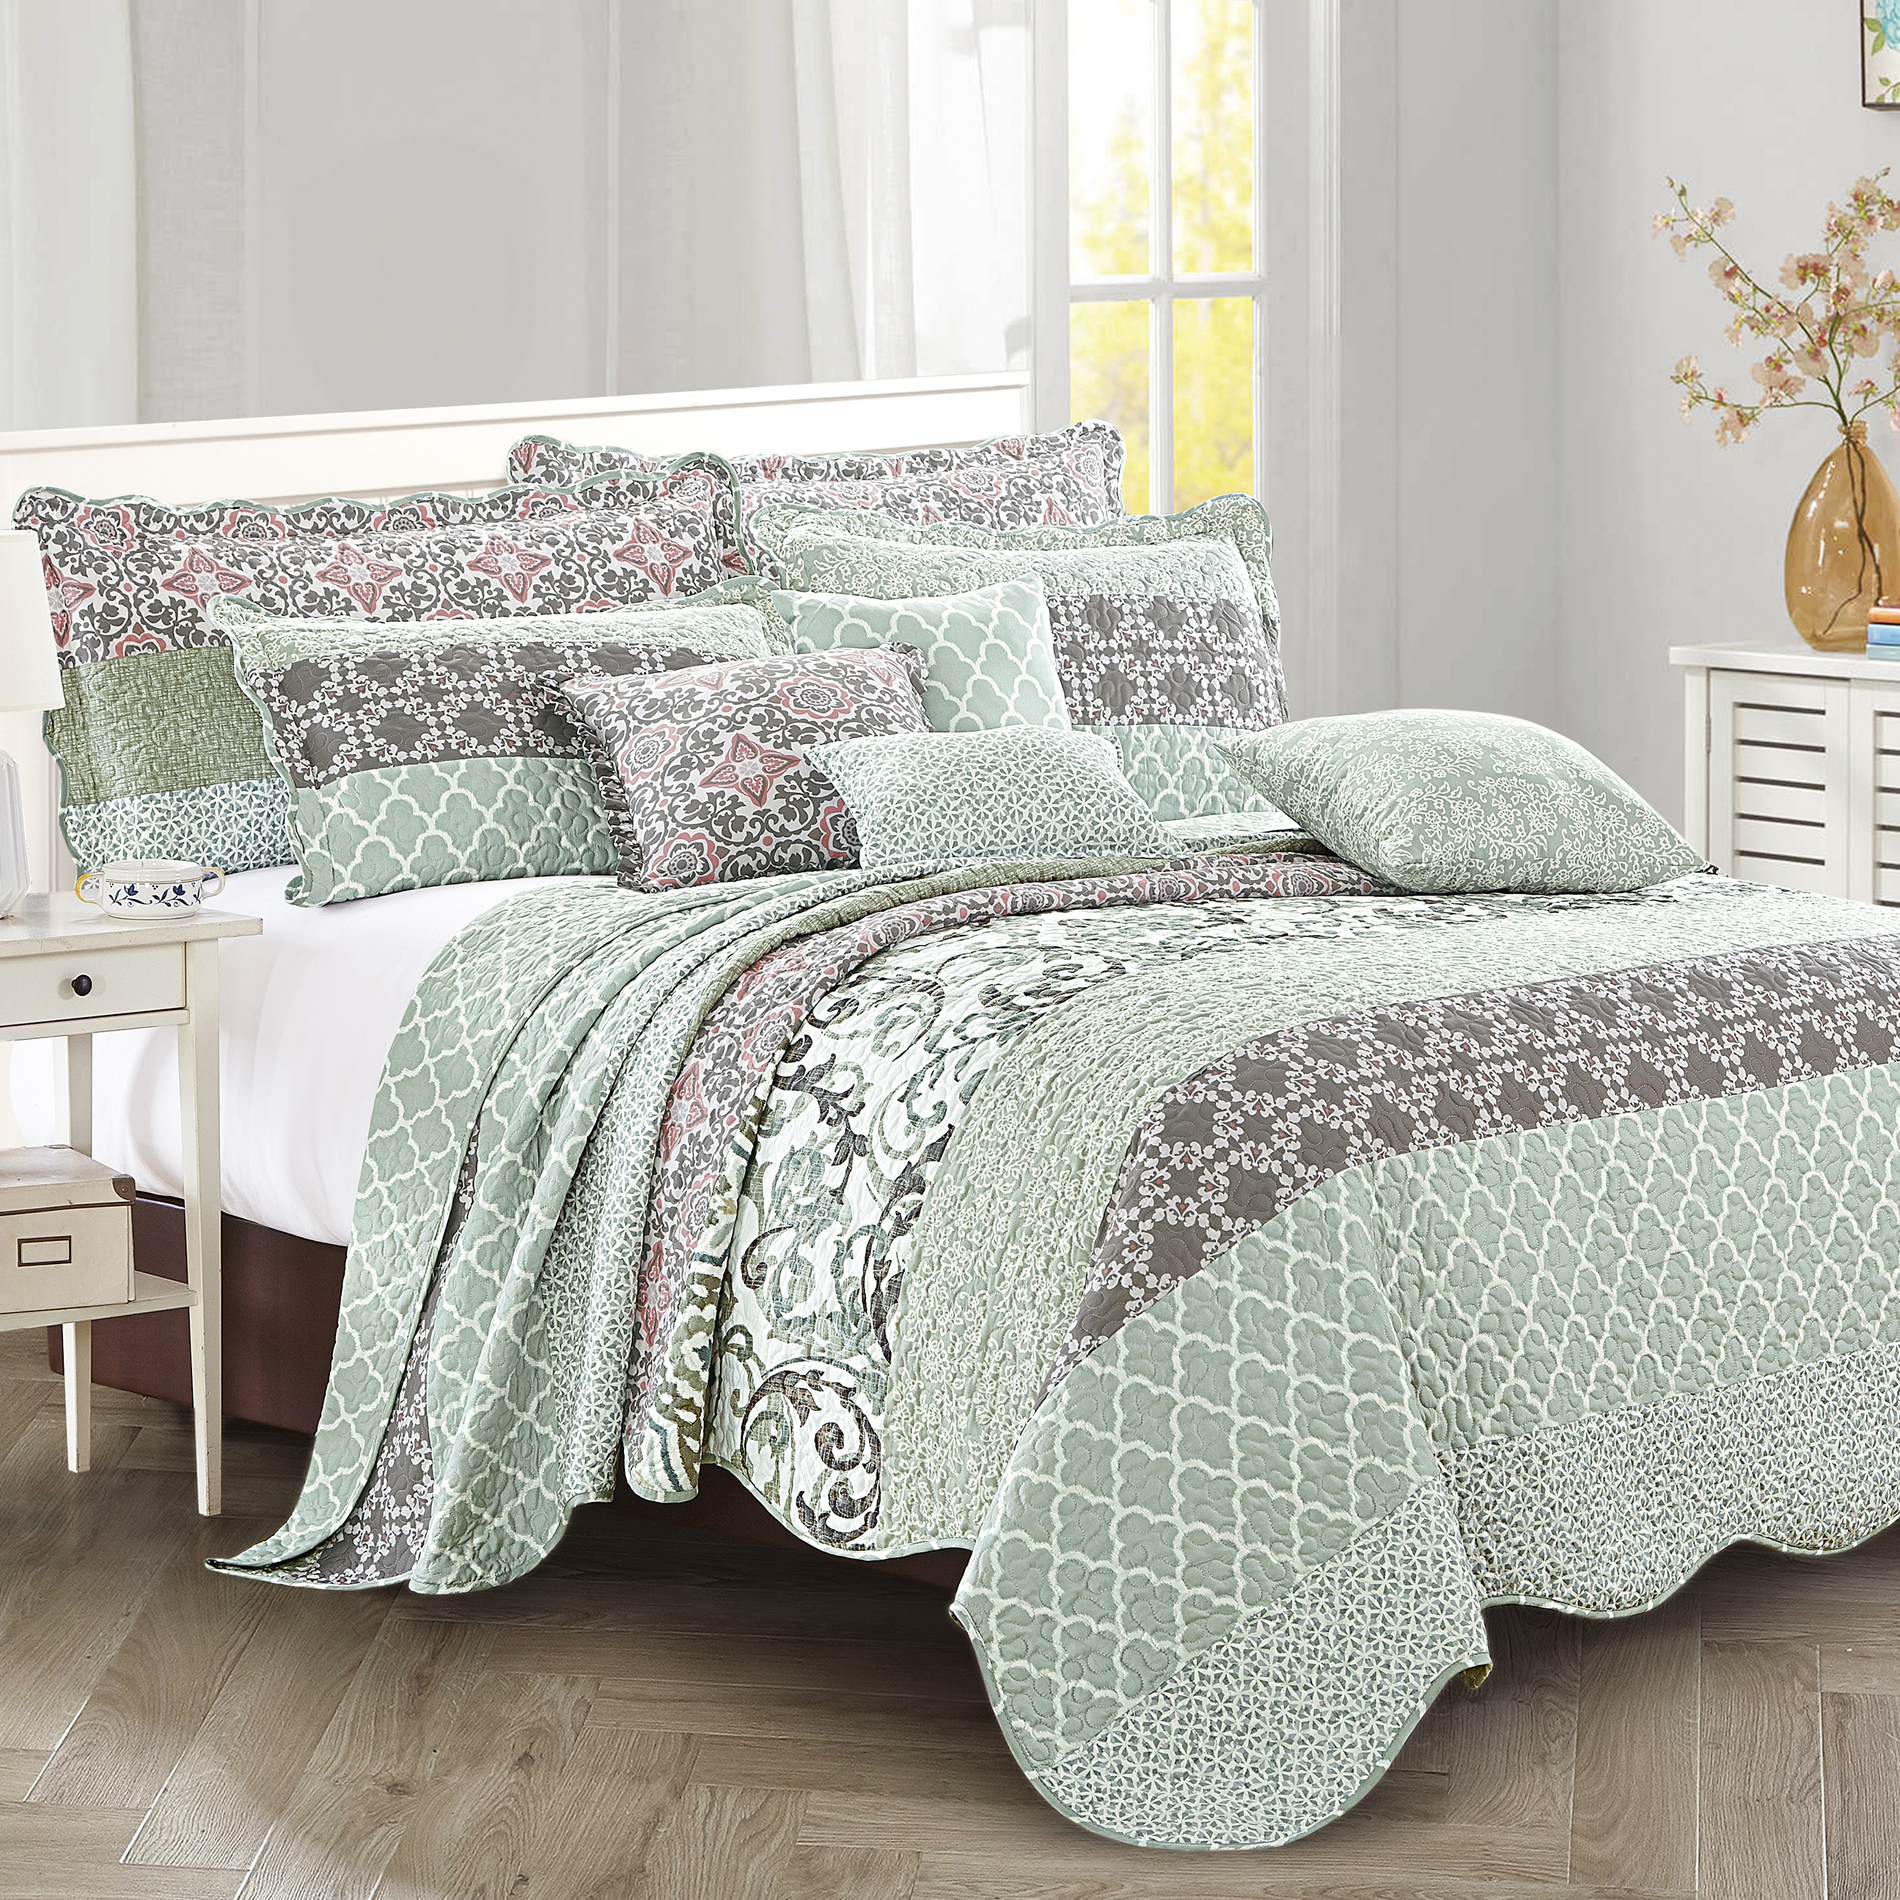 9 Piece Striped Bed Spread Set